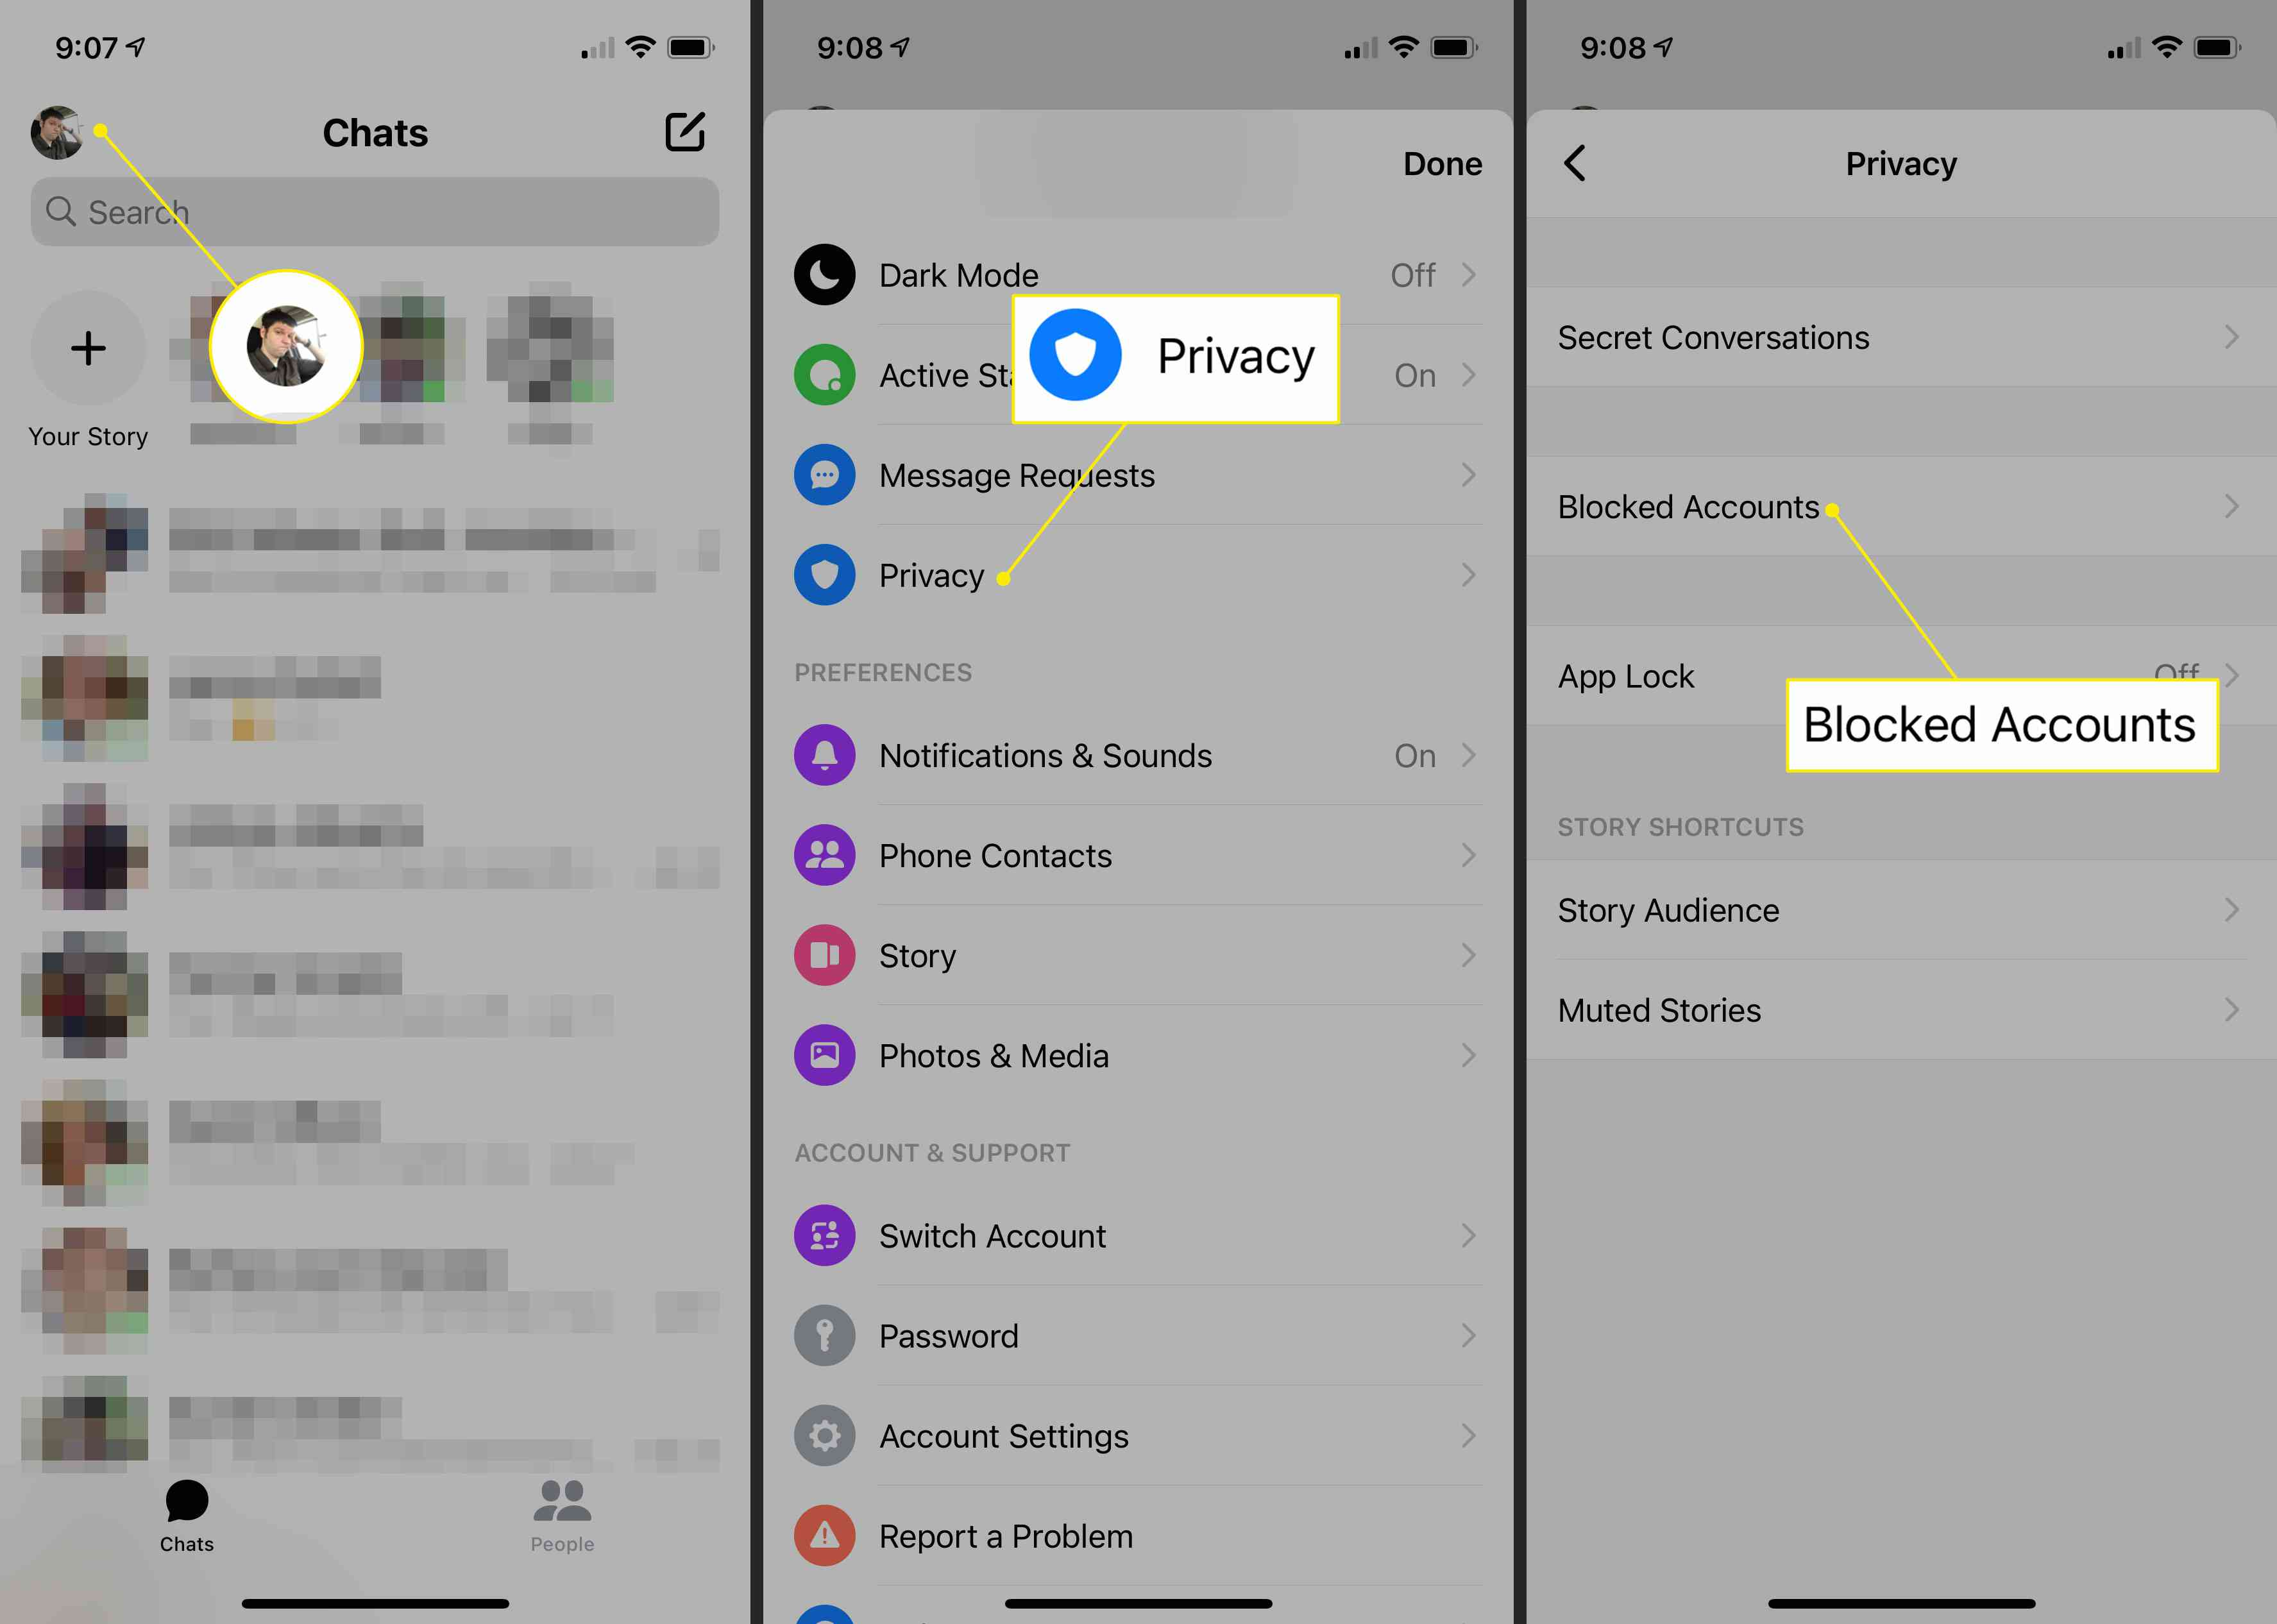 The Privacy and Blocked Accounts headings in Messenger settings